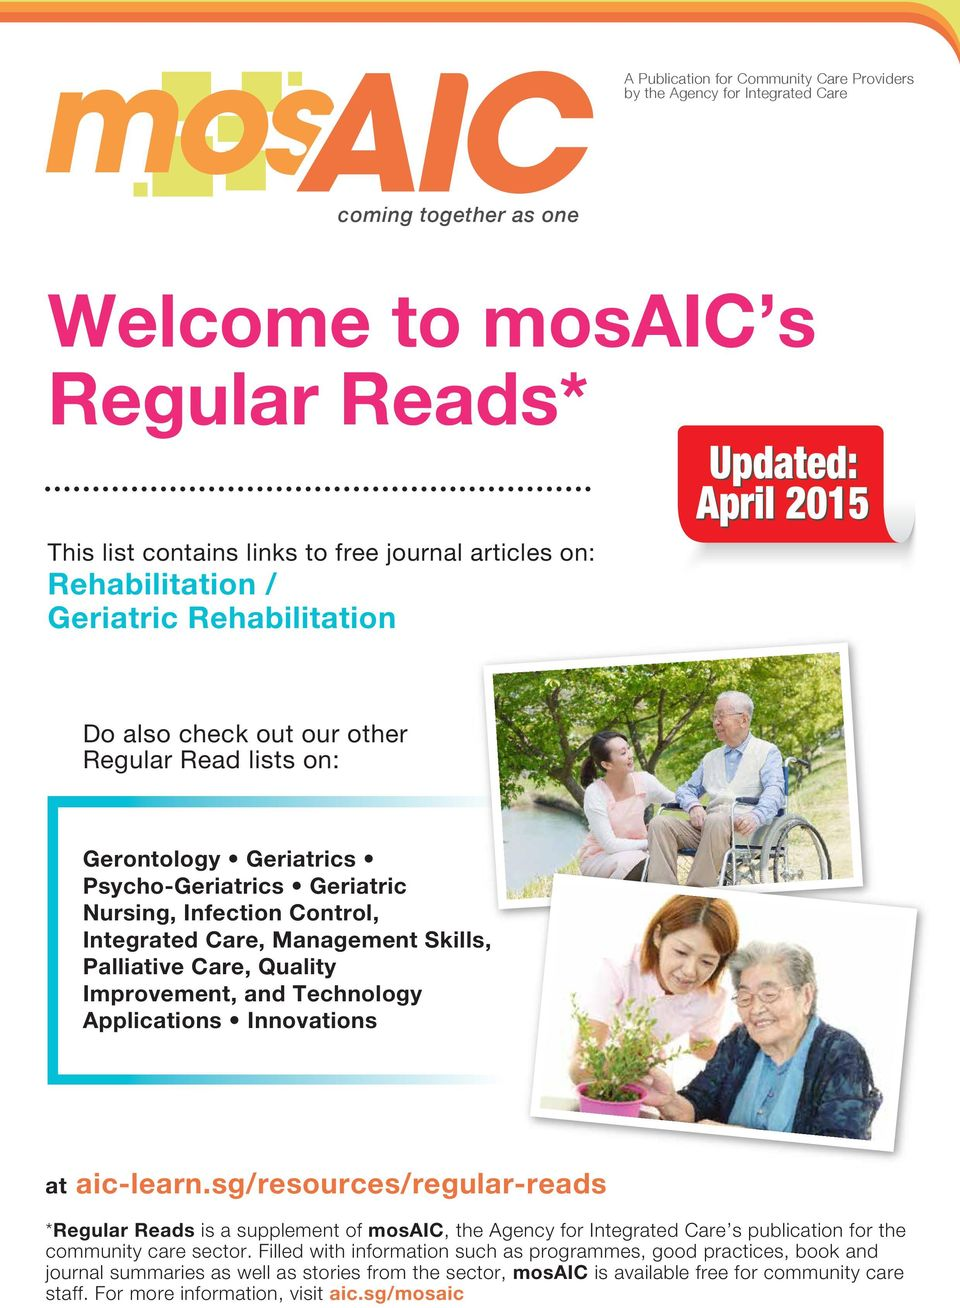 sg/resources/regular-reads *Regular Reads is a supplement of mosaic, the Agency for Integrated Care s publication for the community care sector.